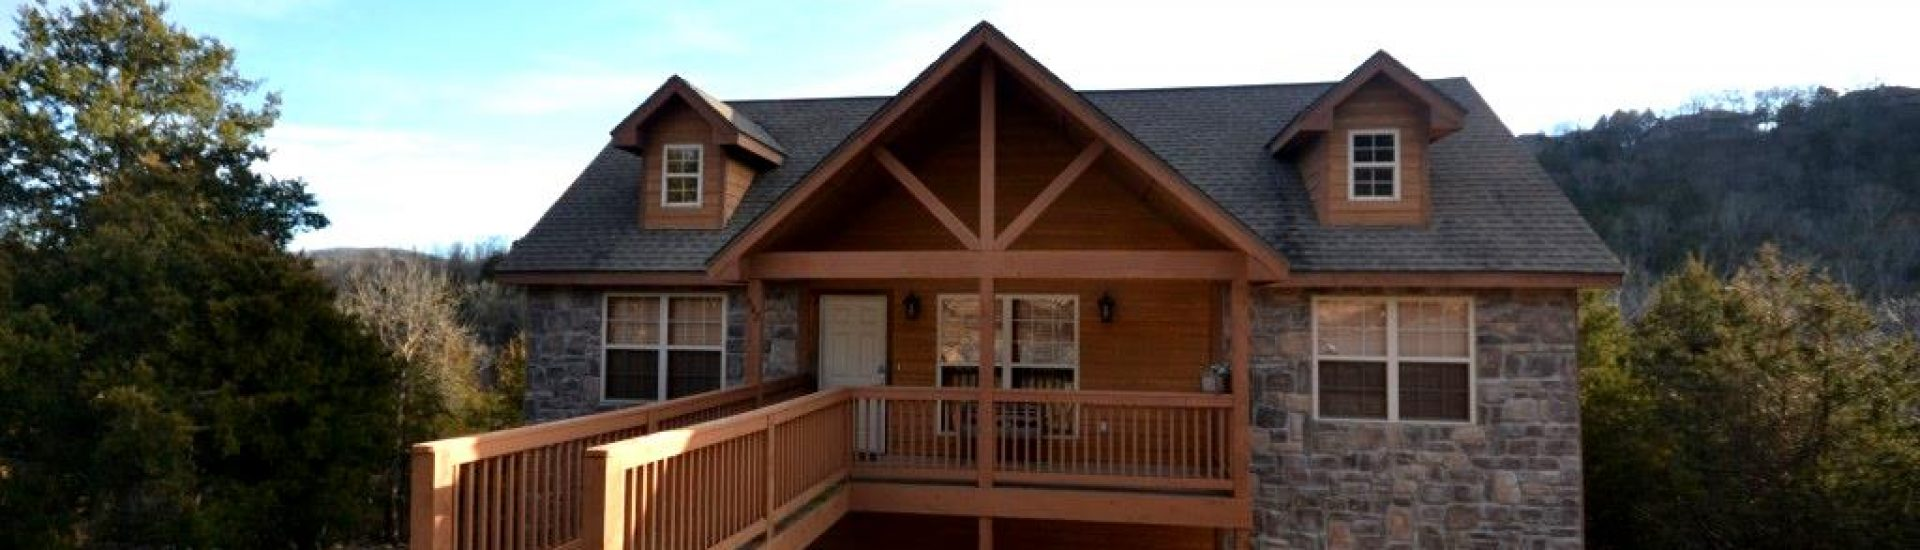 Book now for 2 bedroom suites in branson mo